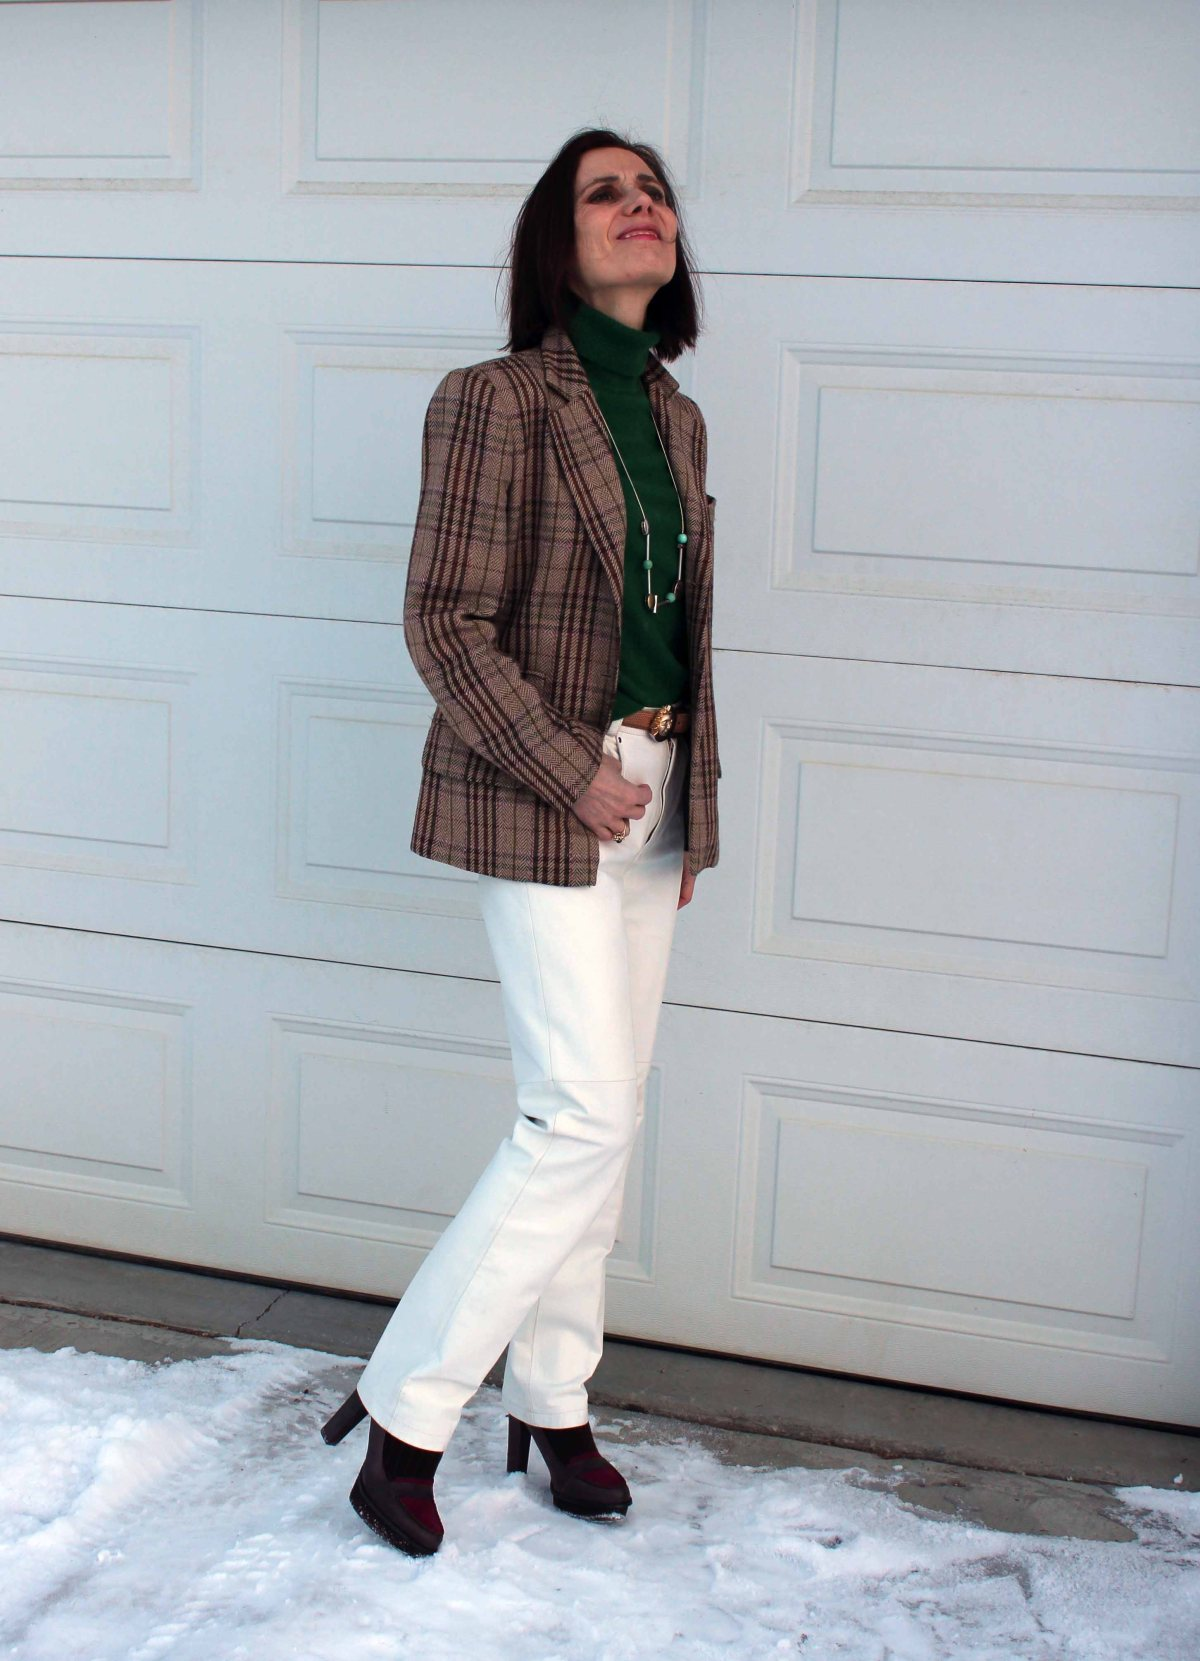 fashion blogger over 50 in casual posh work outfit with white pants and tartan blazer and green turtleneck cashmere sweater